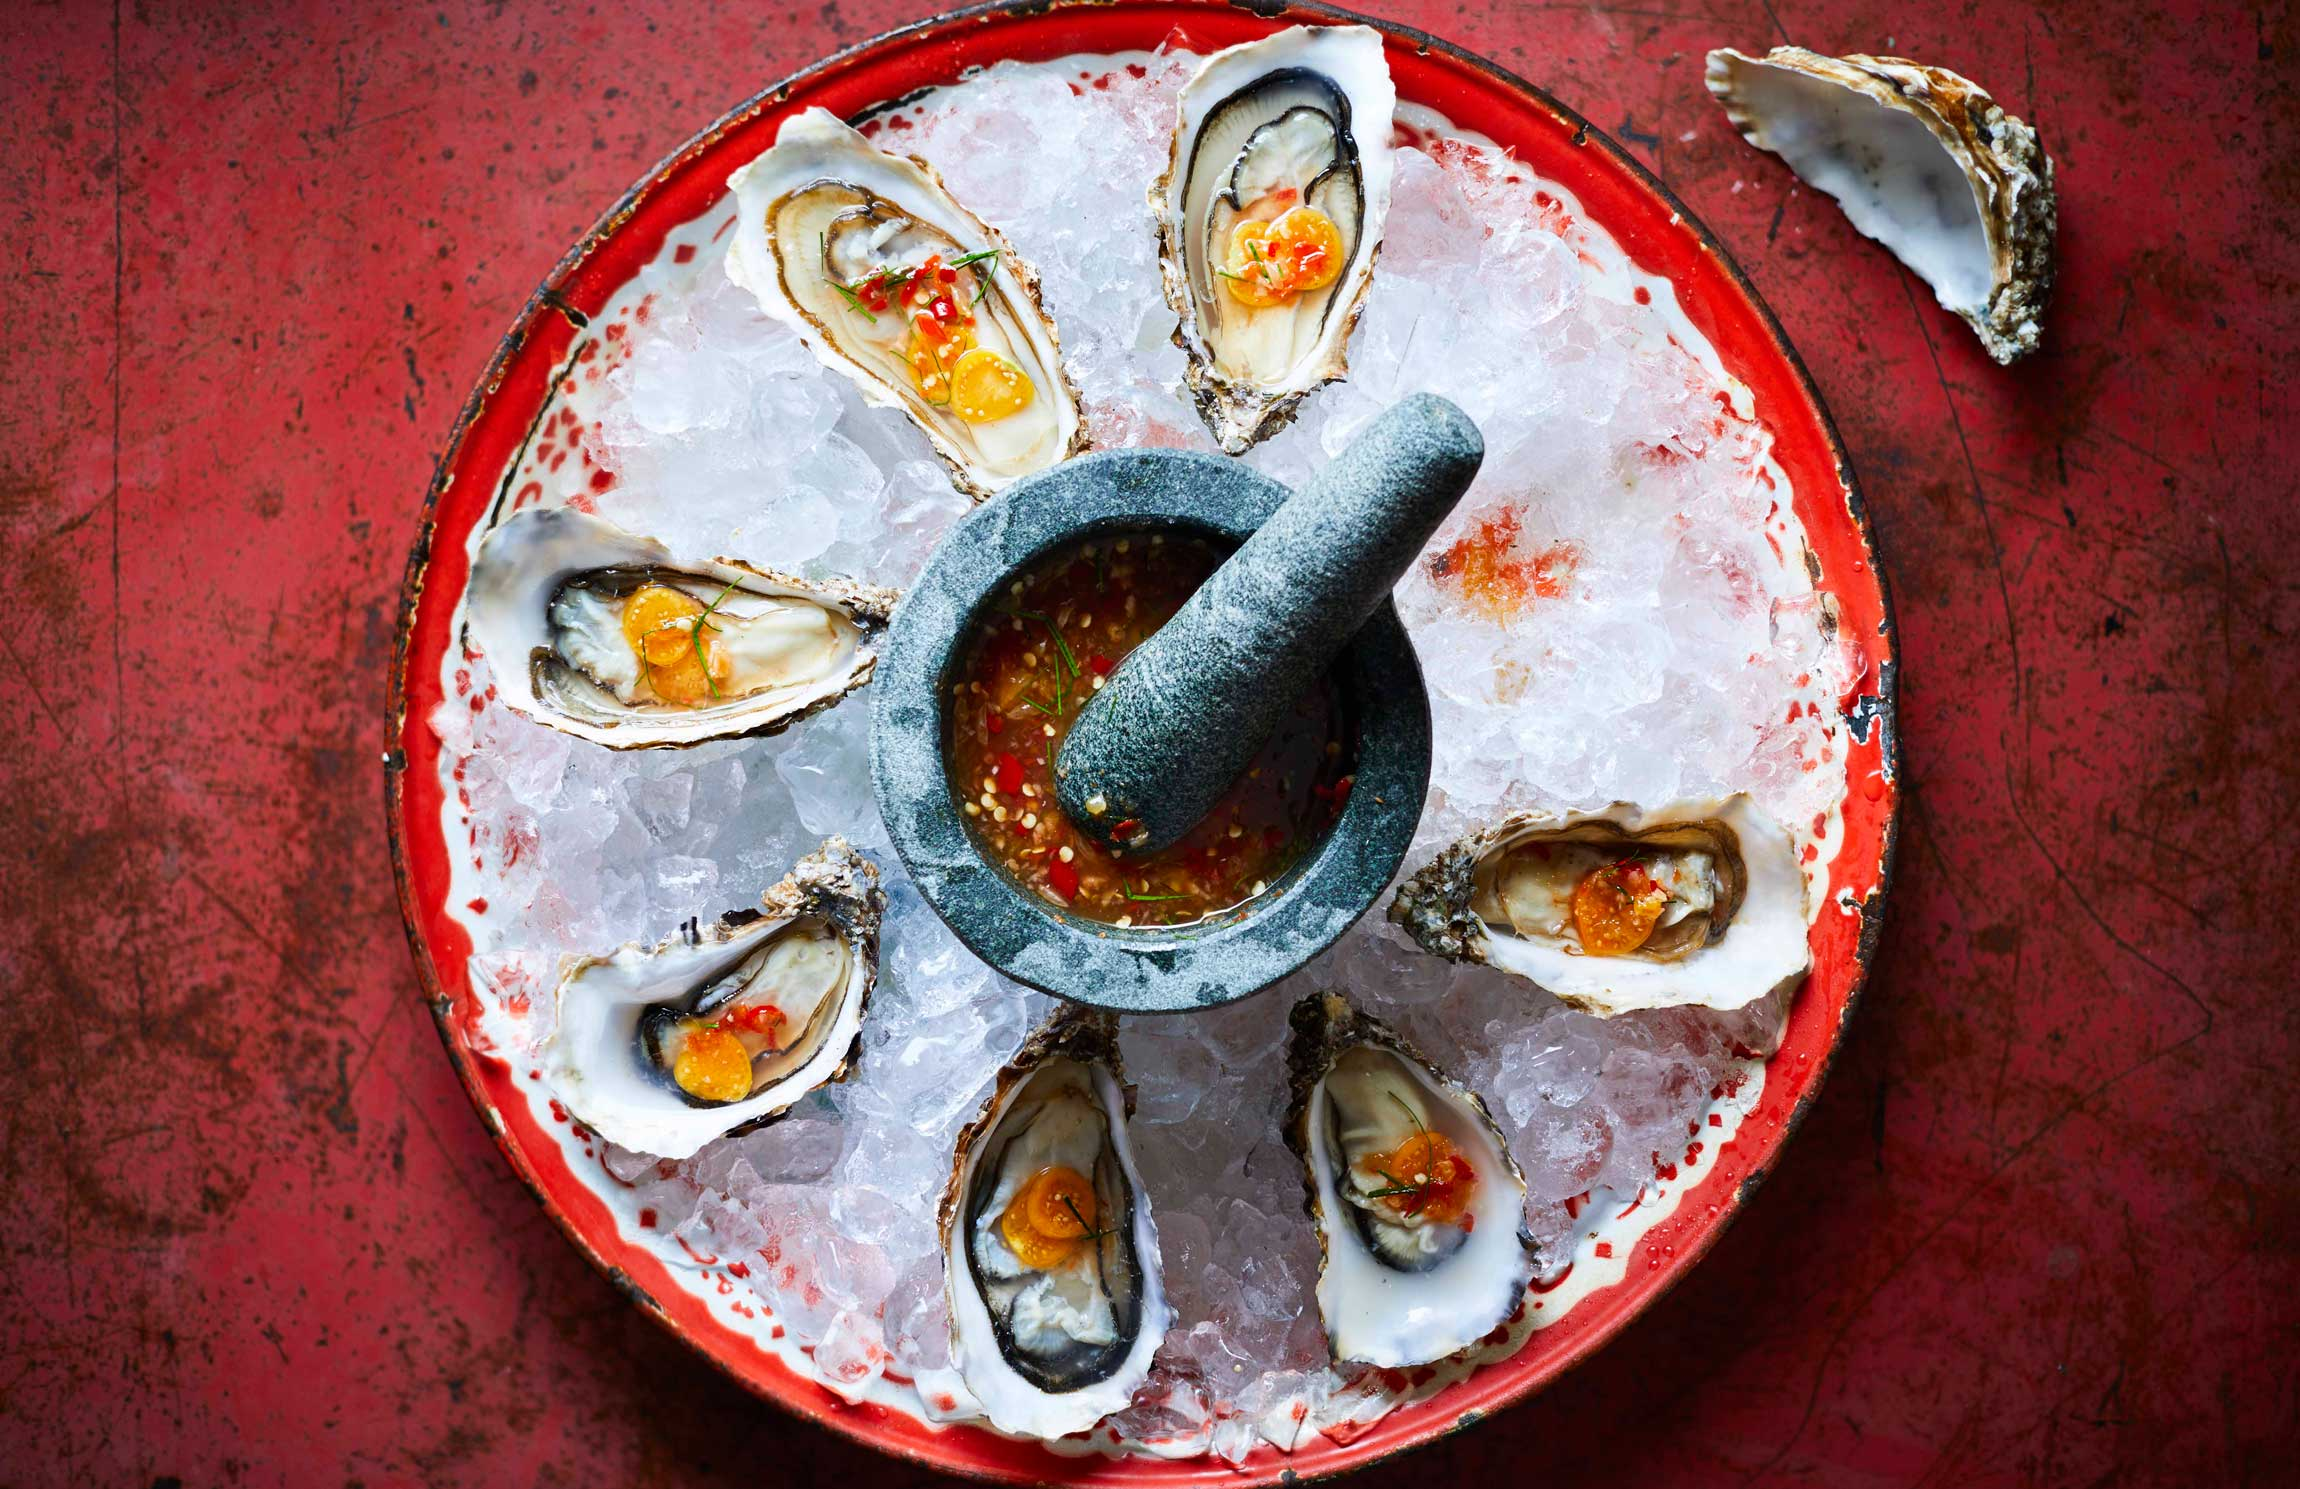 Farang_GRILLED_OYSTERS_WITH_SOUR_FRUITS_CHILLI_AND_LIME.jpg